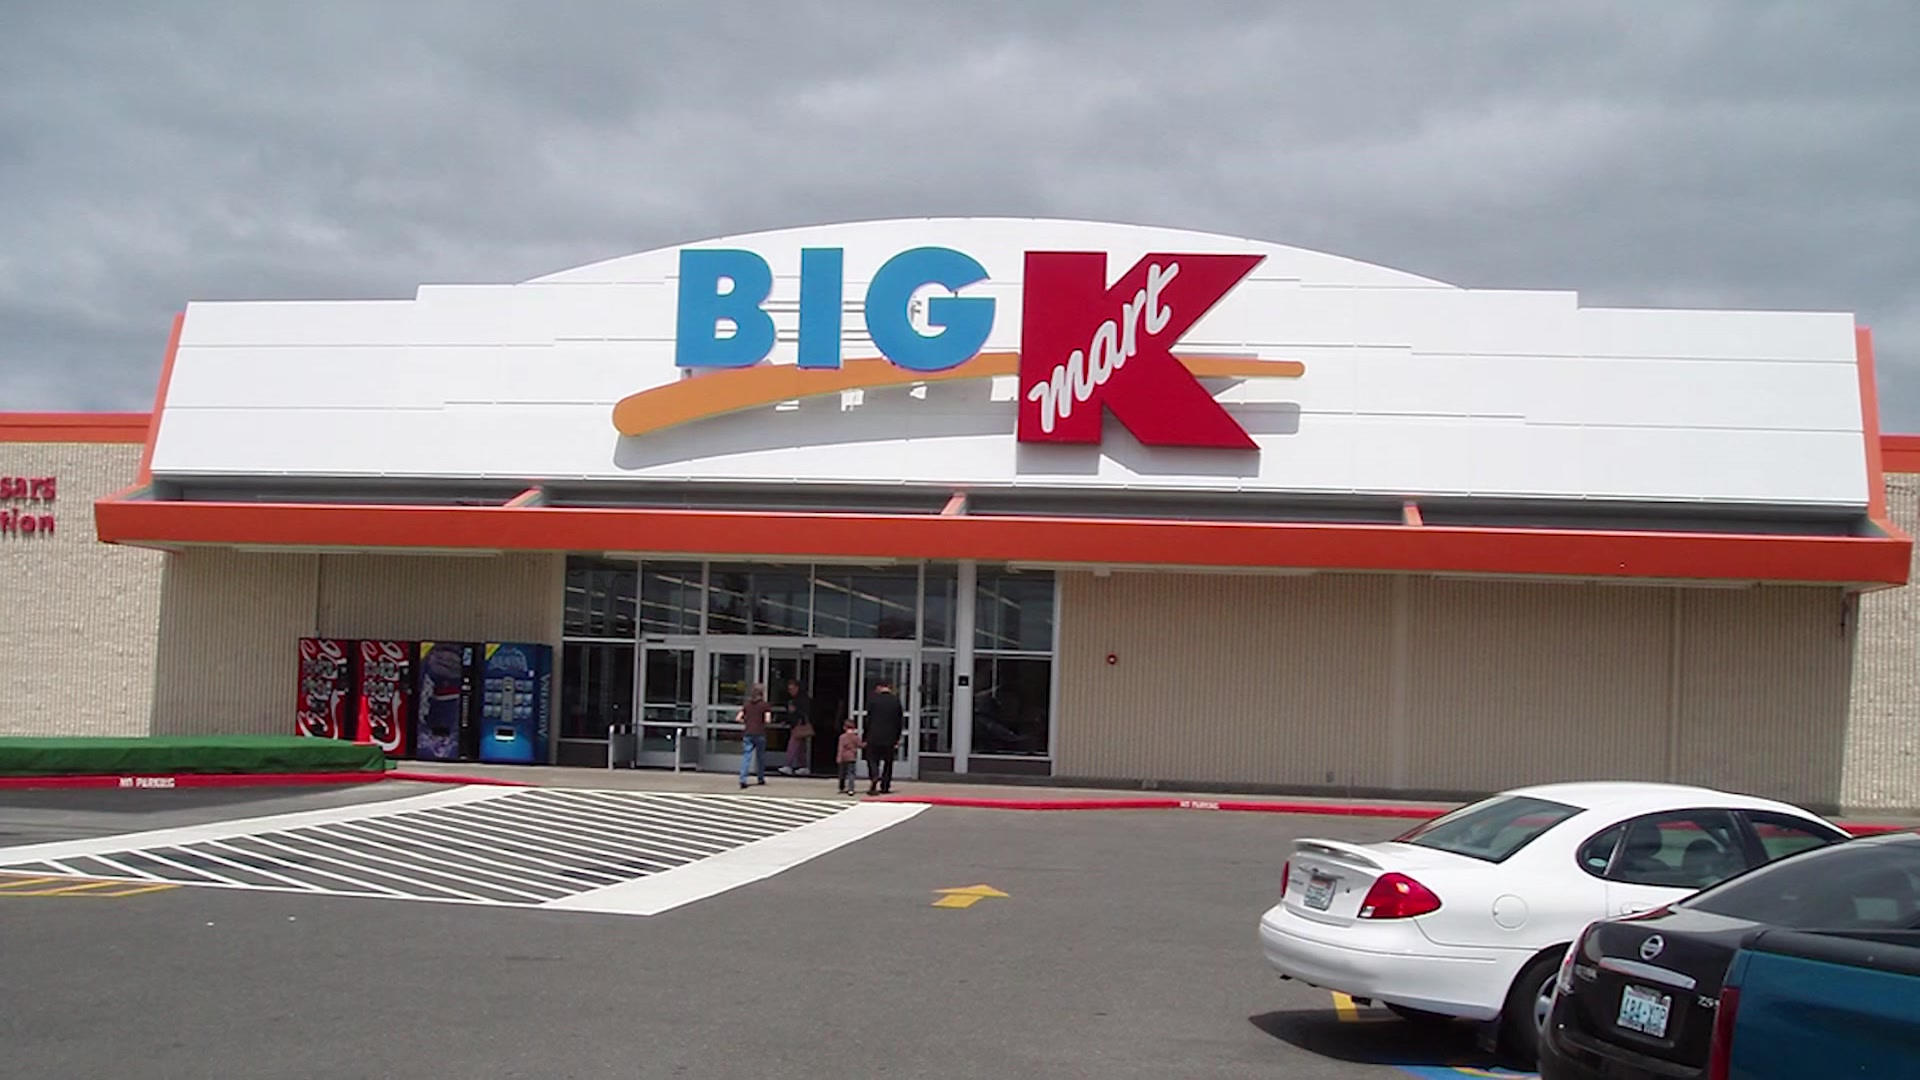 Infant Carrier Kmart South Milwaukee Woman Allegedly Left 3 Small Children In Car